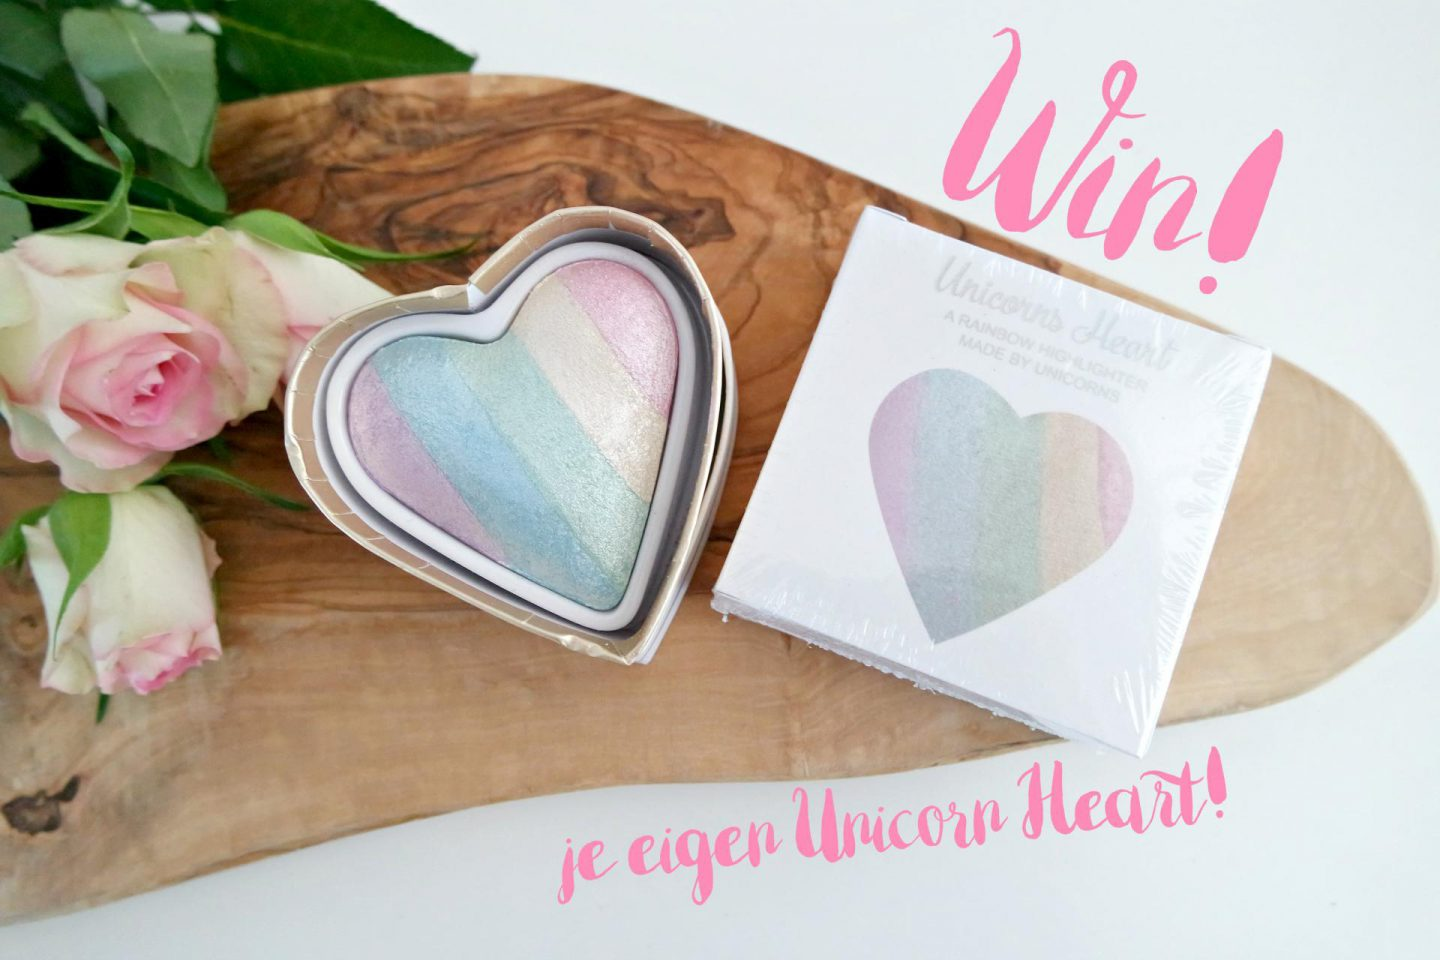 winactie unicorn highlighter van I heart makeup